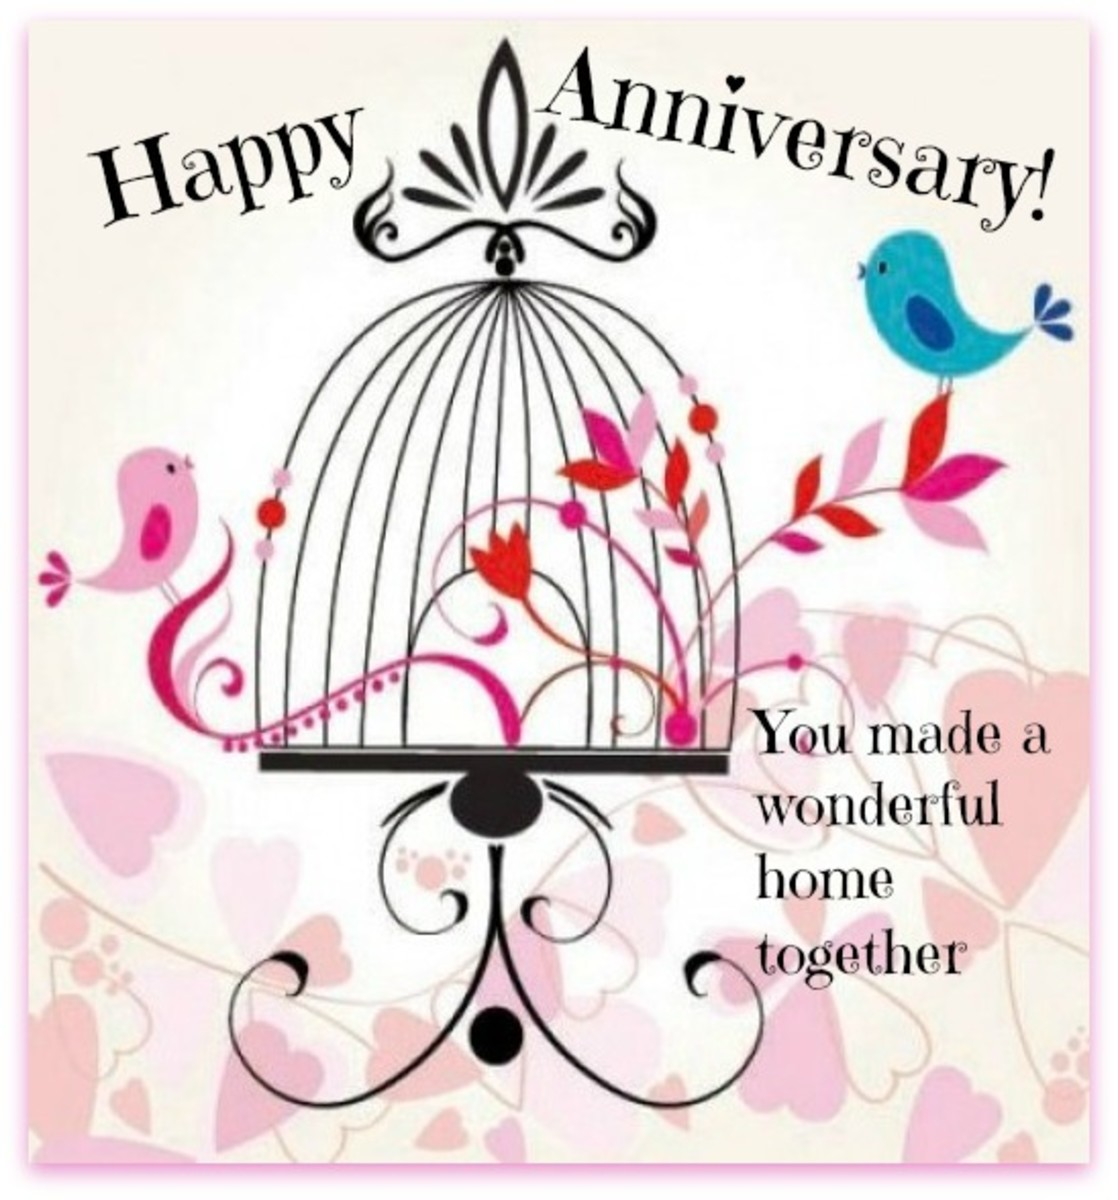 Happy Anniversary to Couple with Happy Home